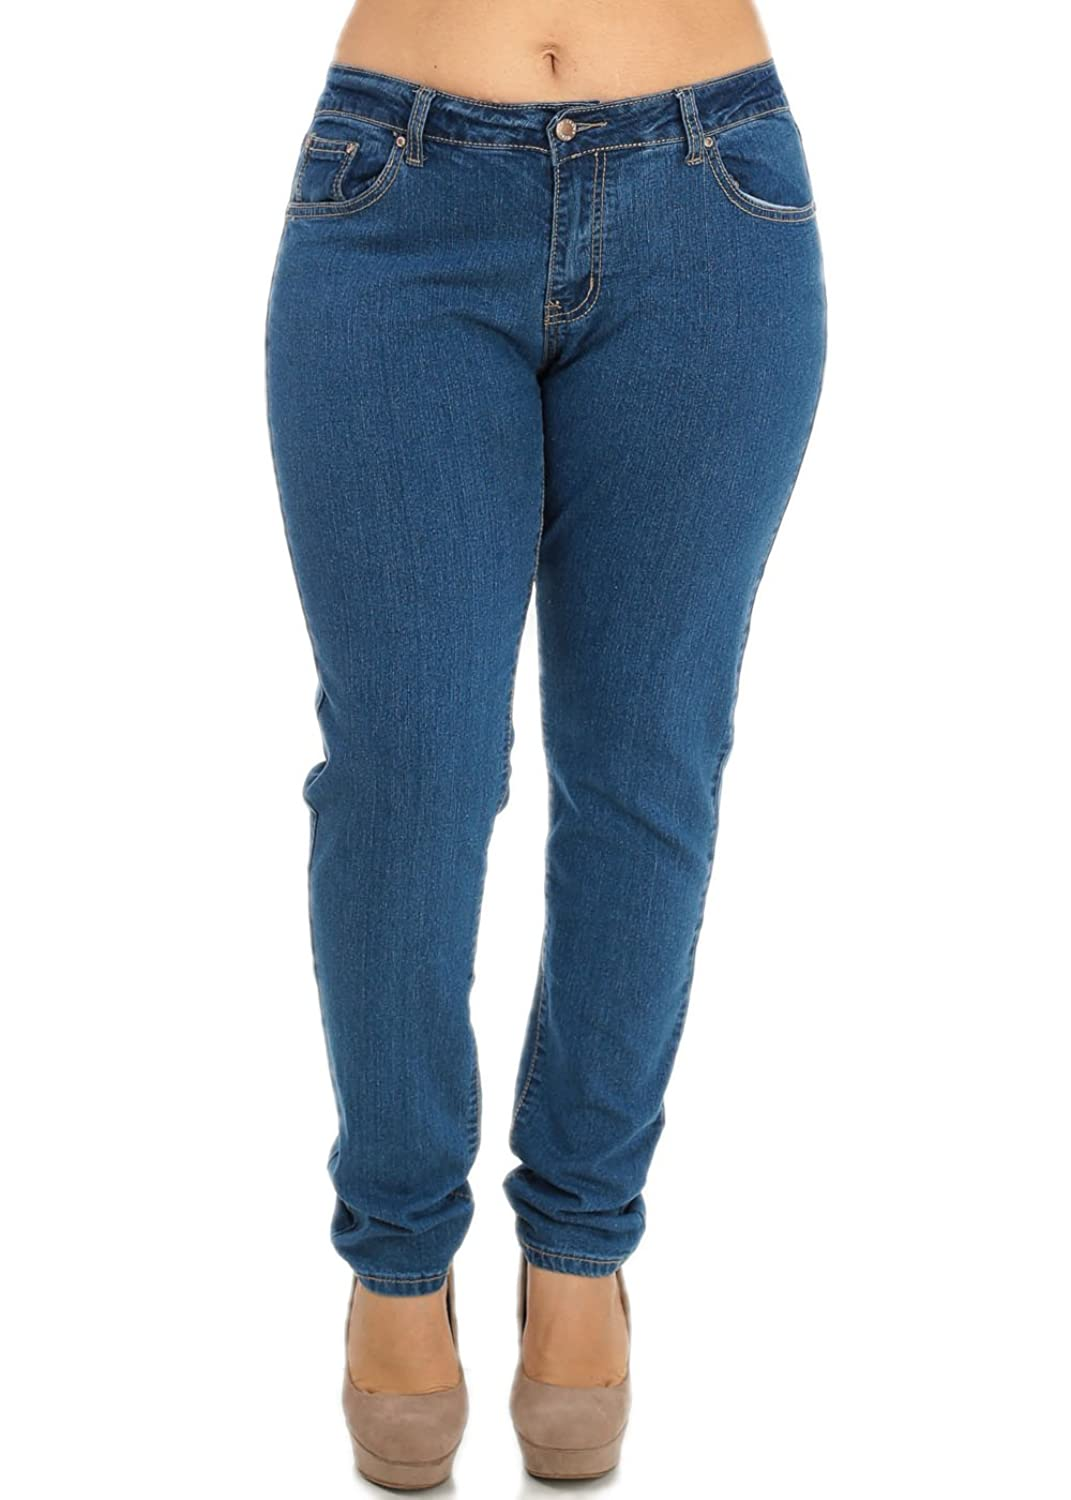 85%OFF Plus Size Cheap Mid Rise Skinny Blue Denim Jeans Jeans ...